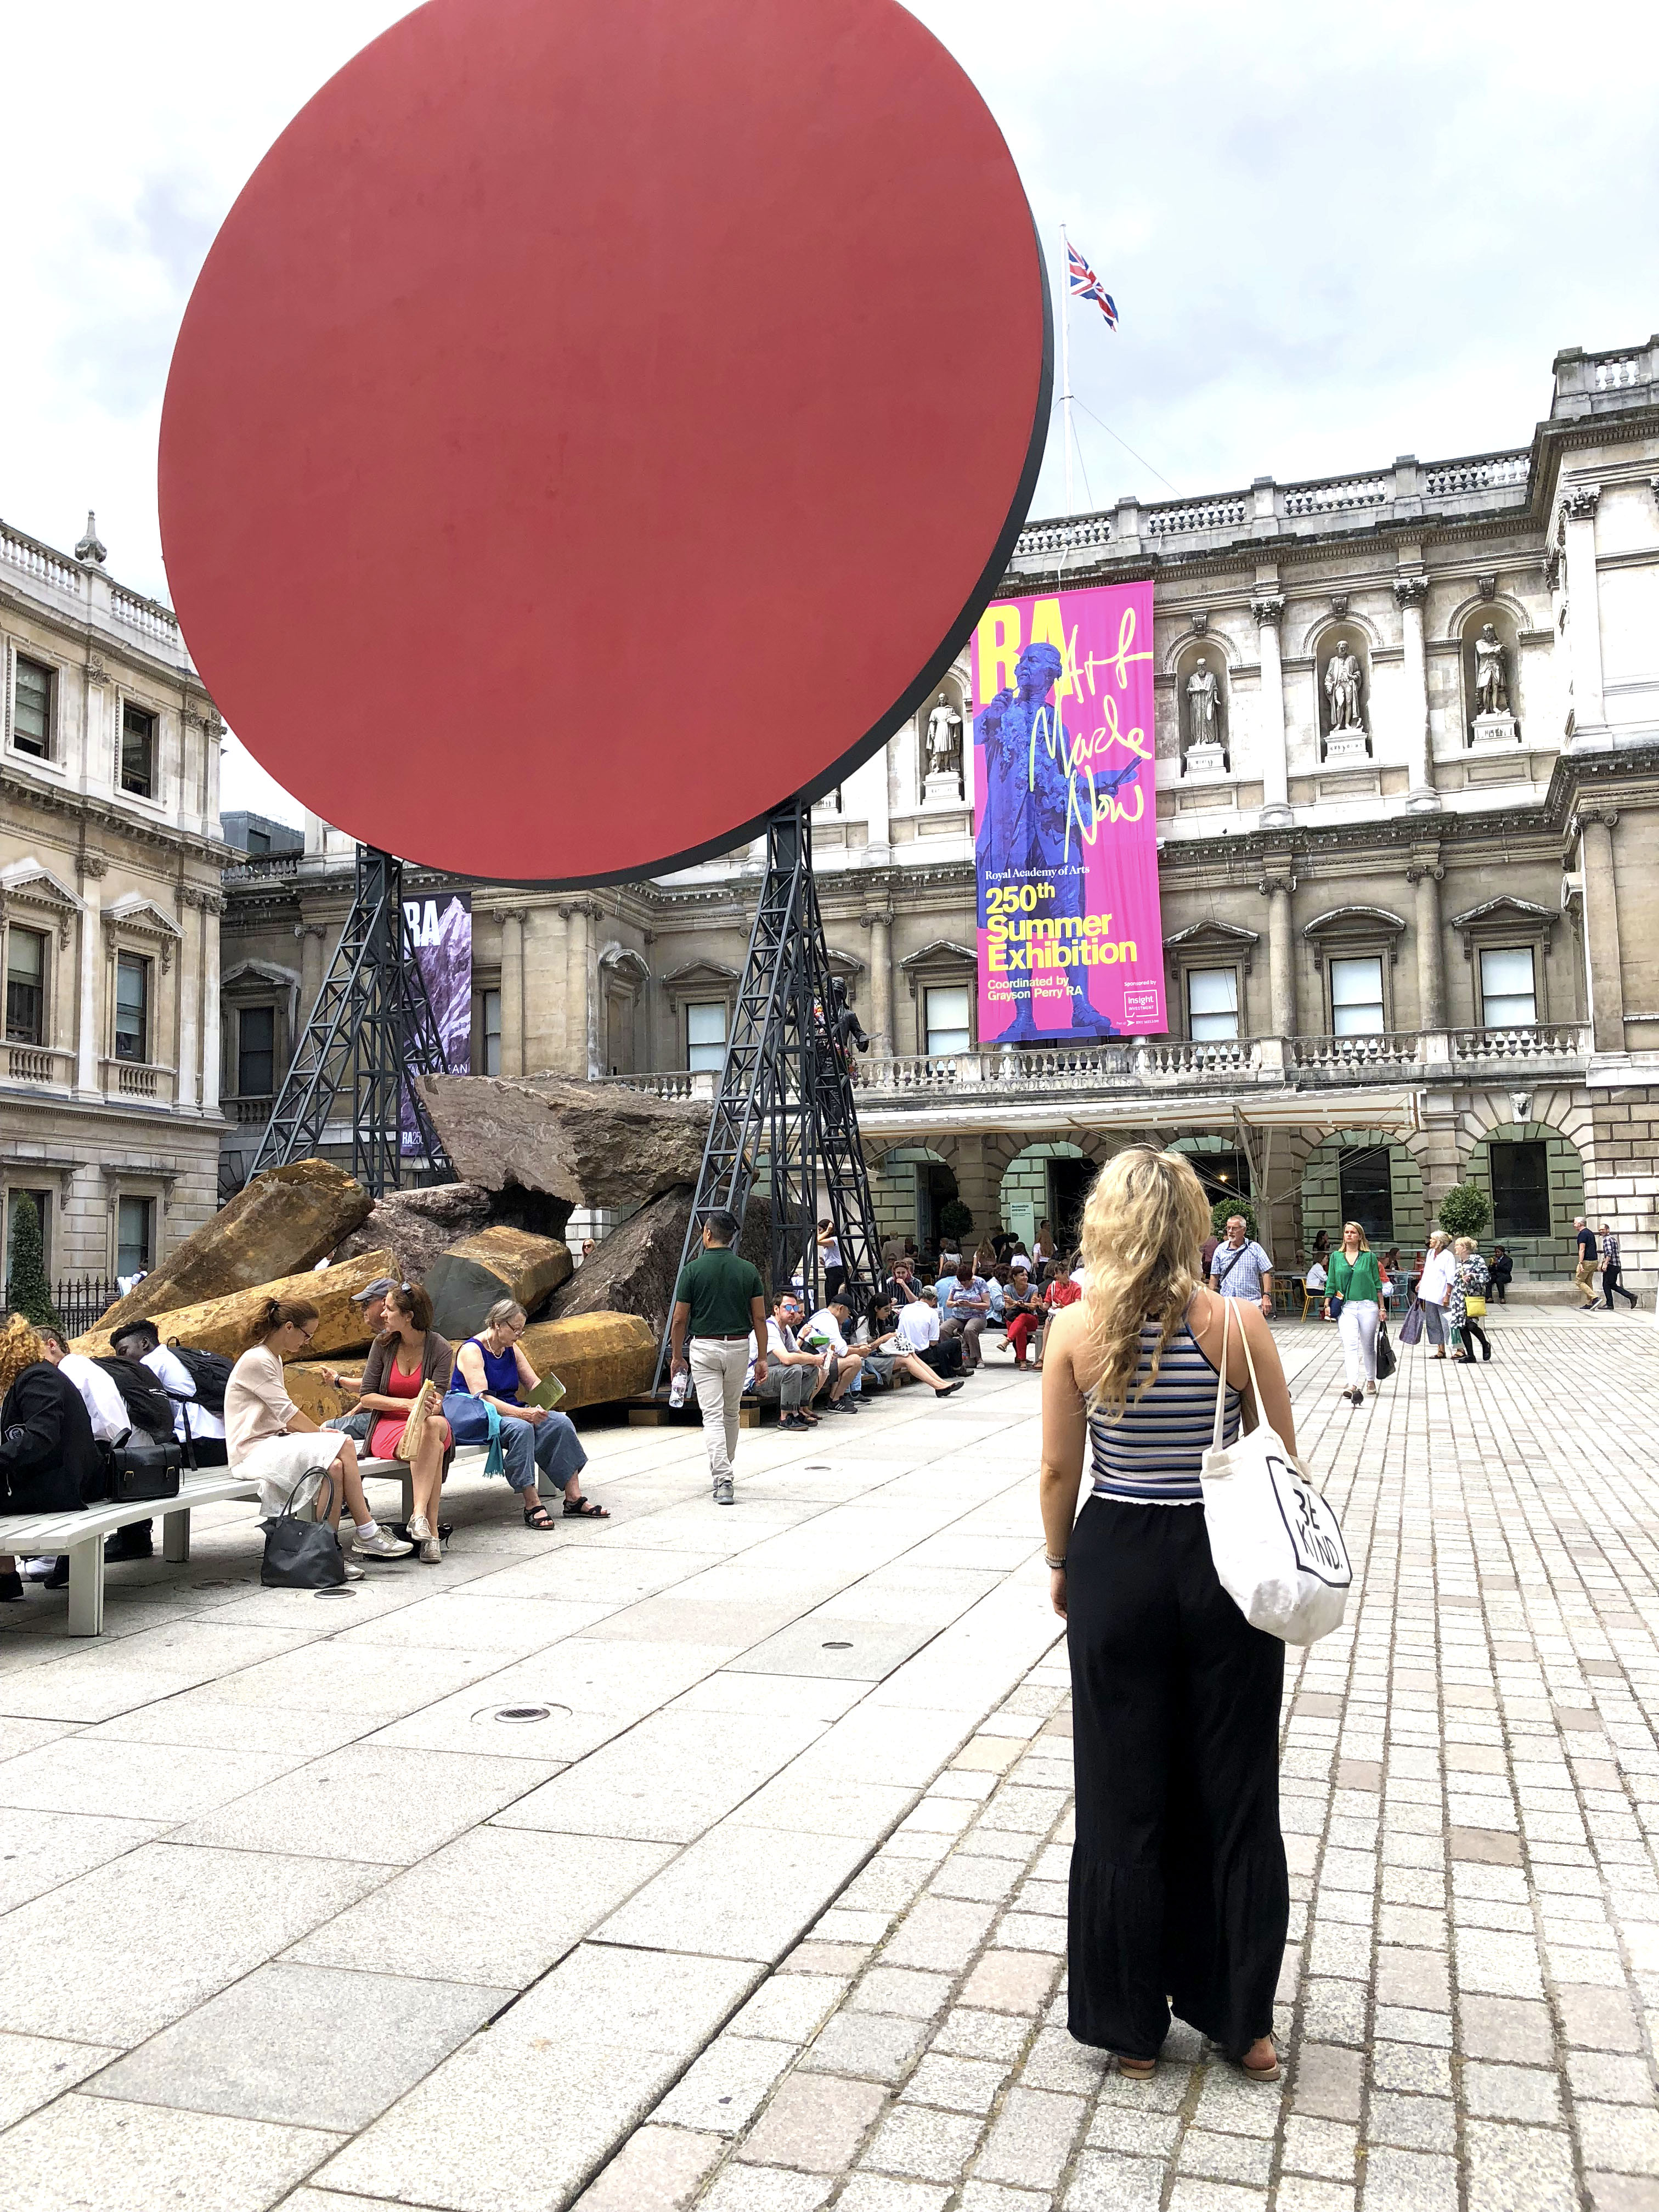 The Royal Academy of Arts Court Yard 2018